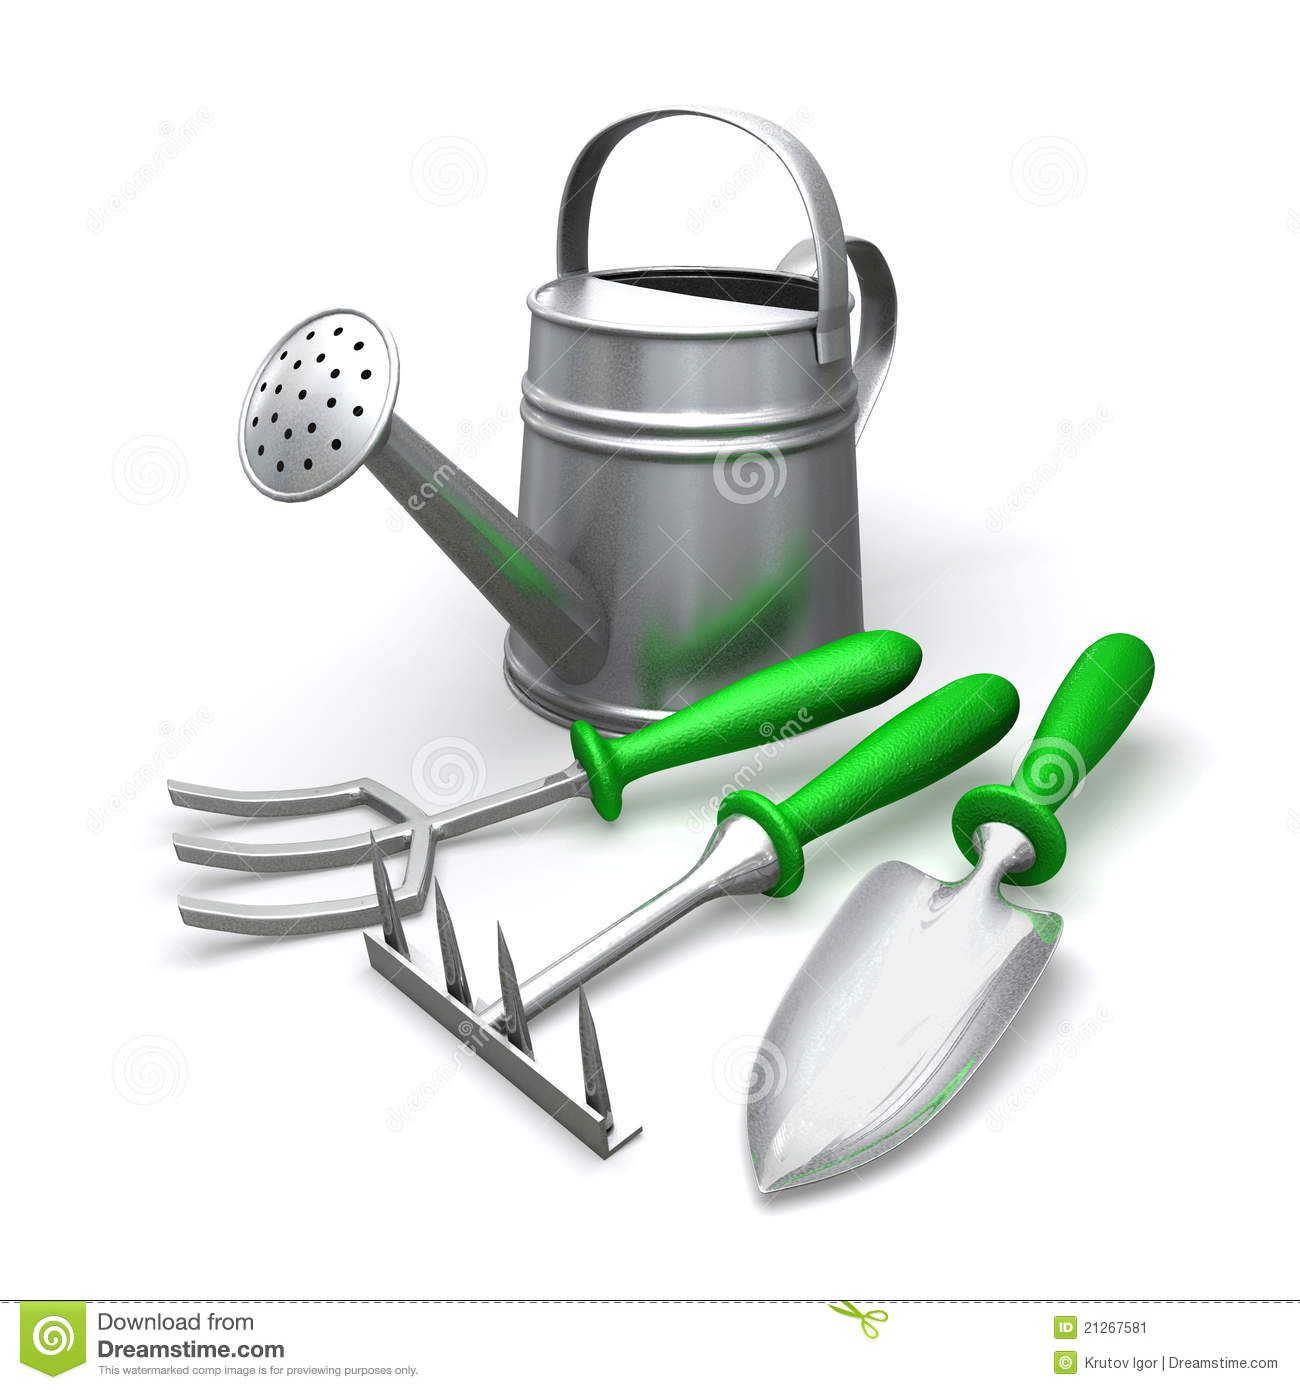 Free garden hand tools pic more info could be found at for Gardening tools 7 letters